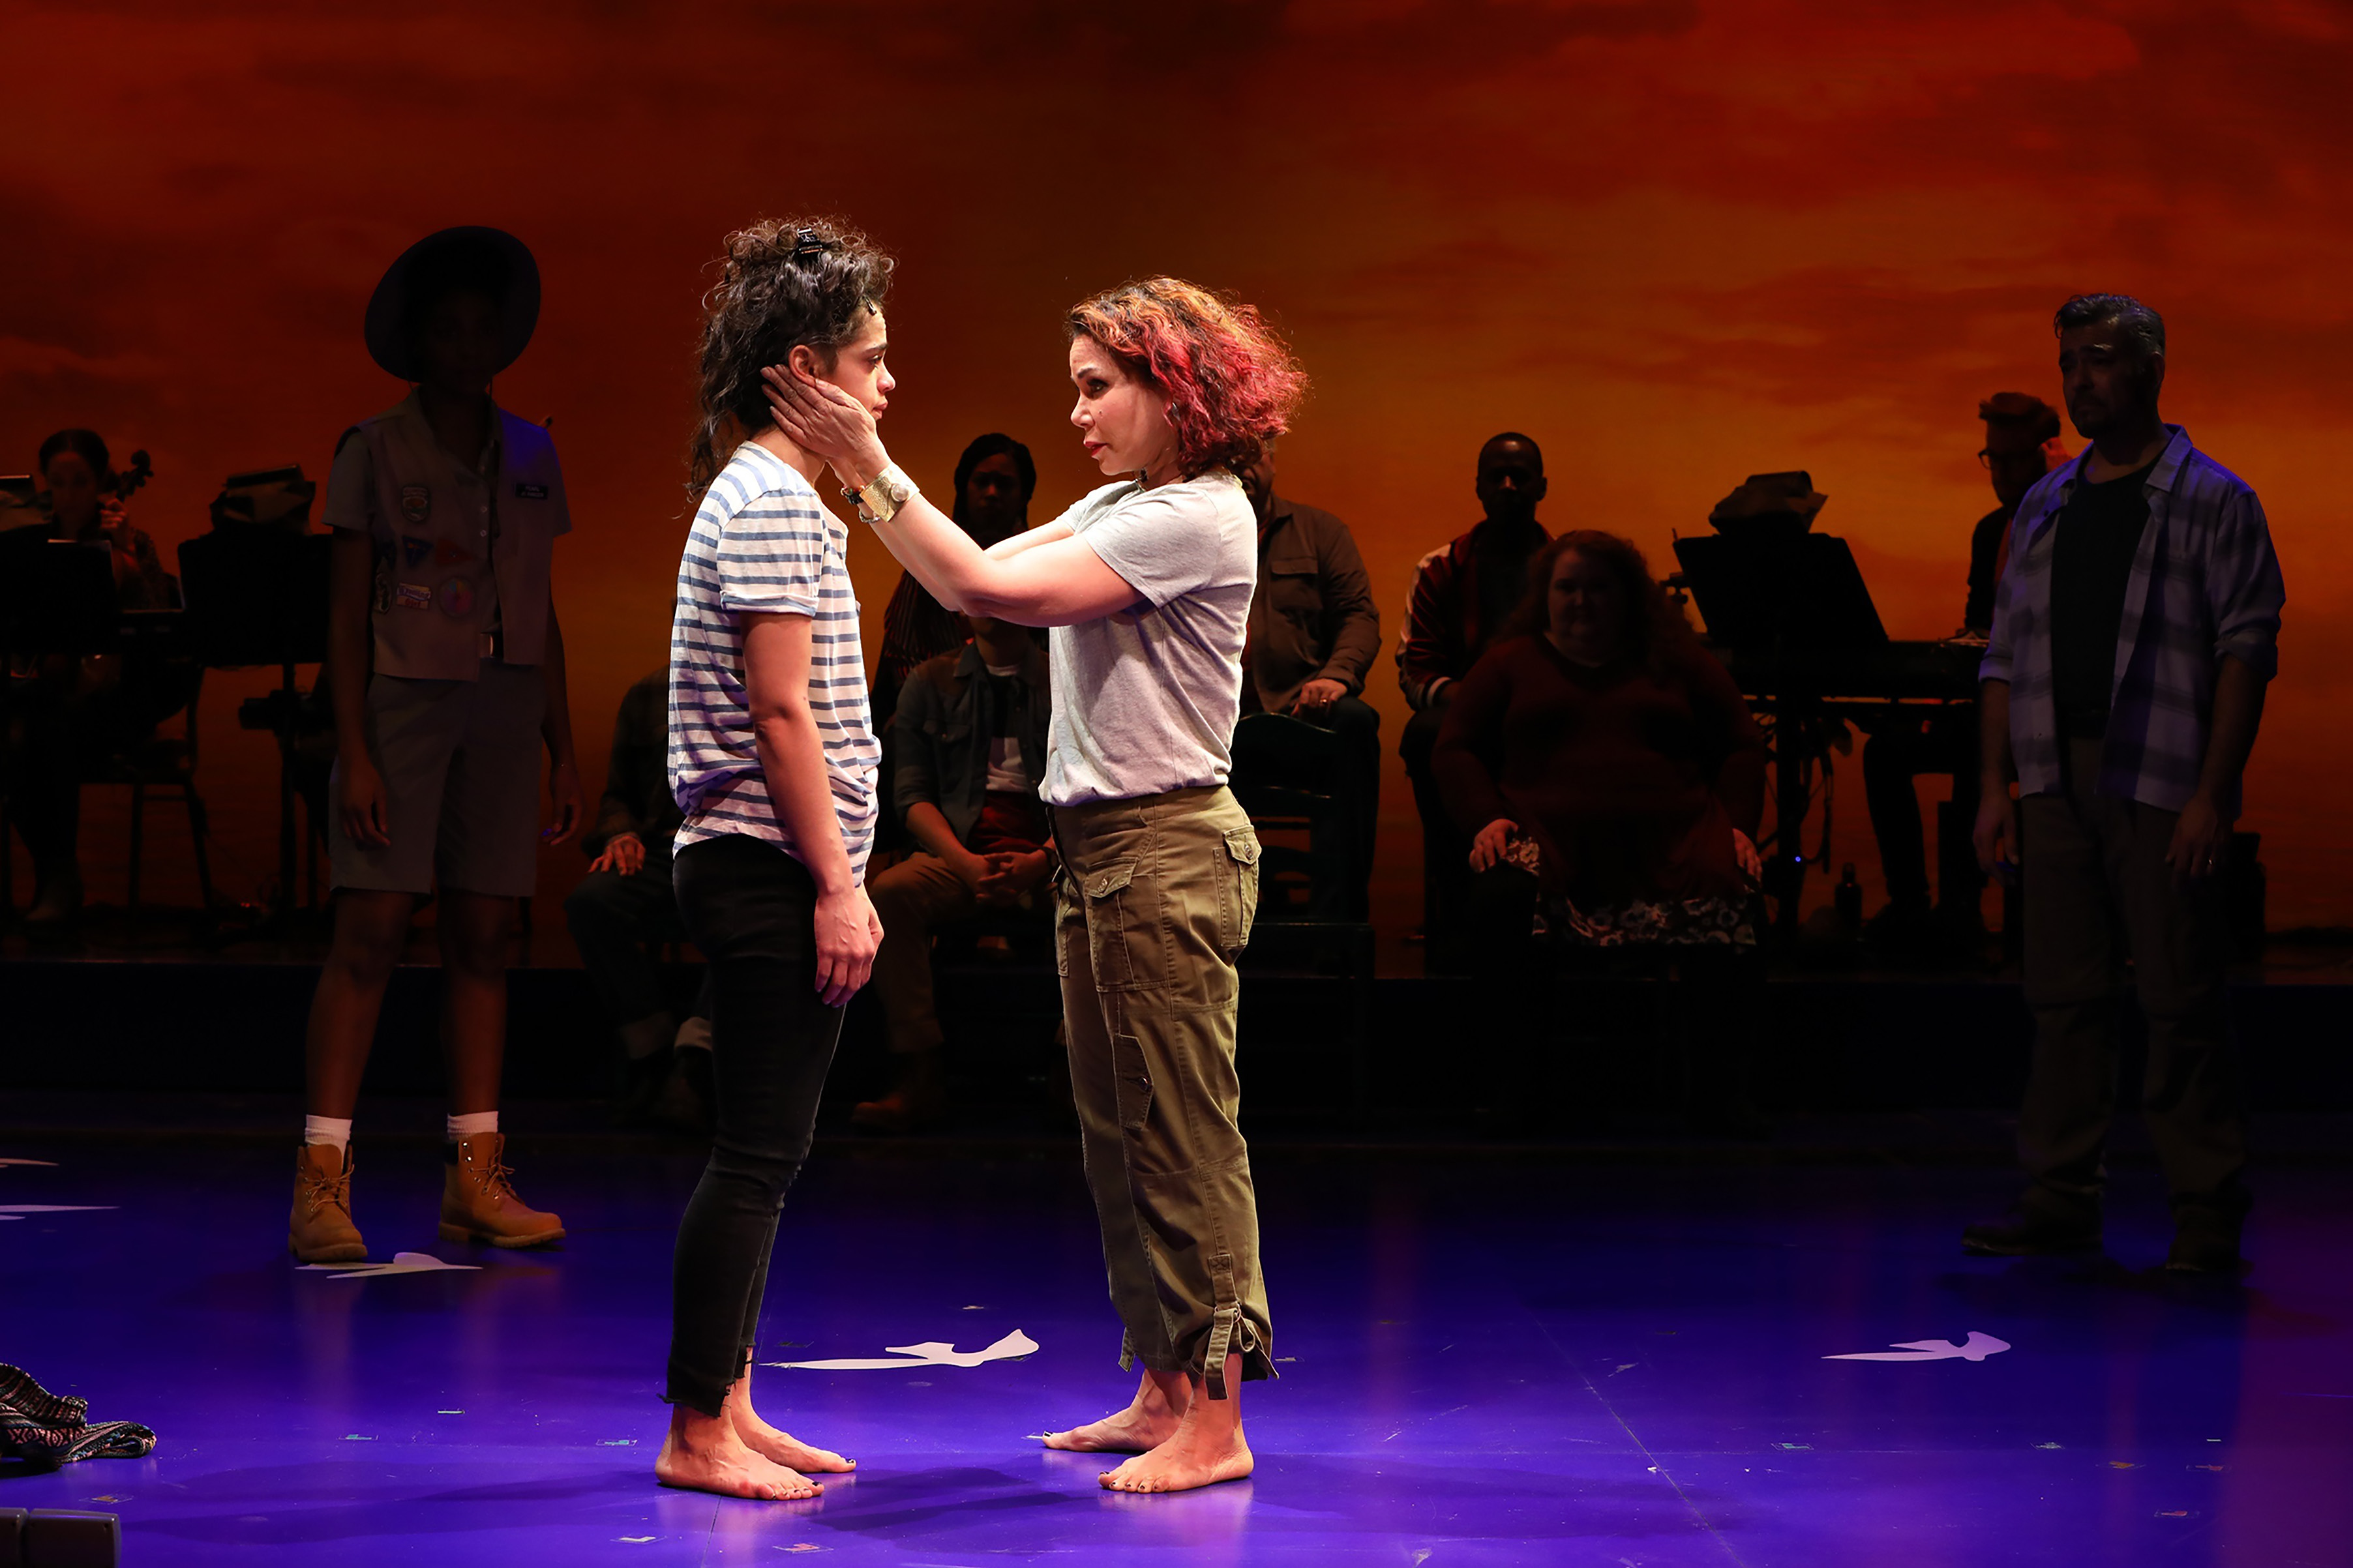 miss-you-like-hell-theater-broadway-production.jpg